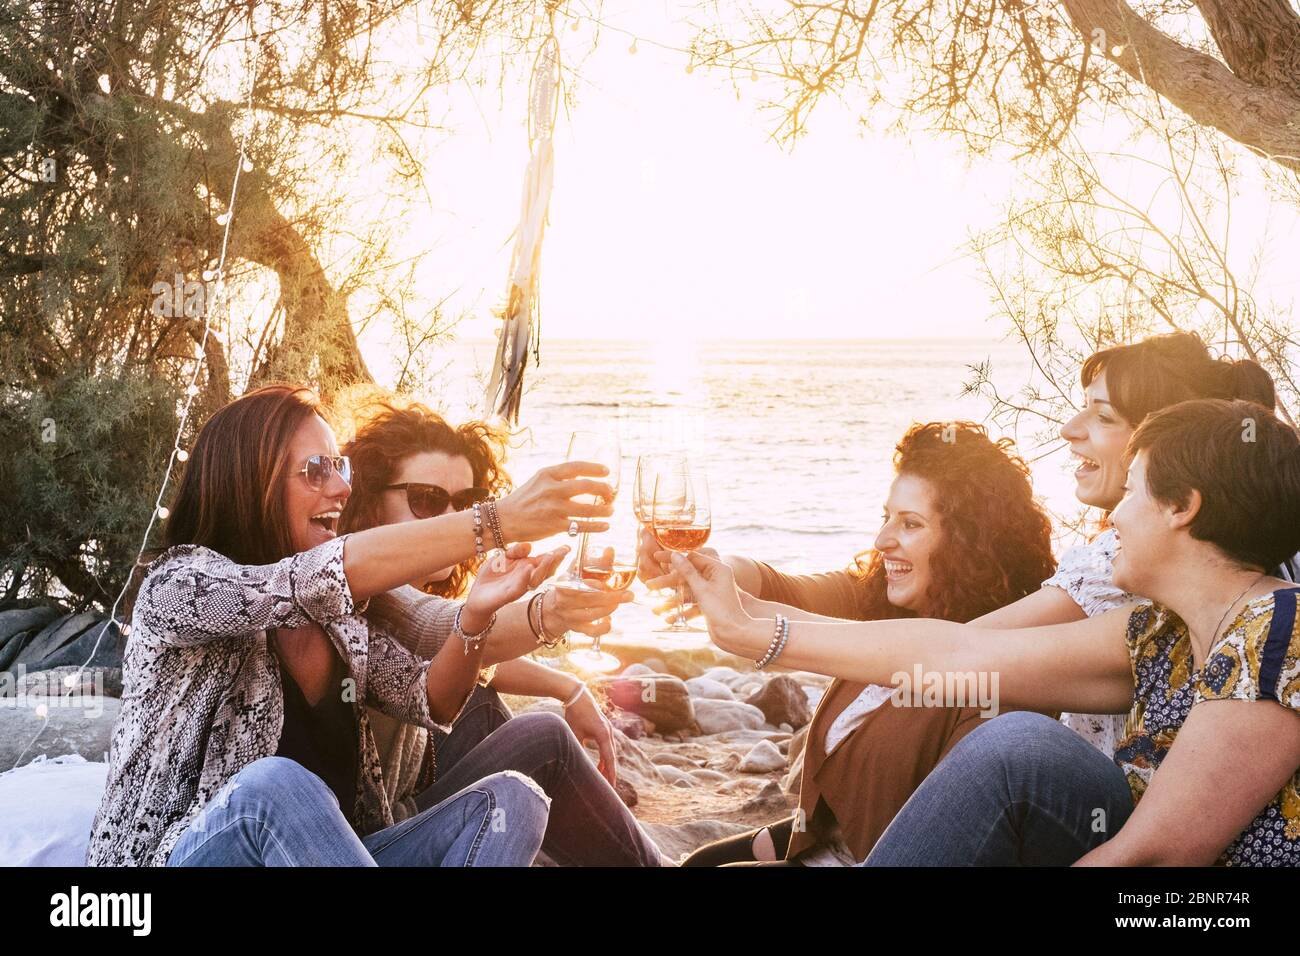 Group of middle age young adult women having fun together toasting and clinking with wine glasses at the beach during a golden sunset enjoying outdoor leisure activity or vacation Stock Photo